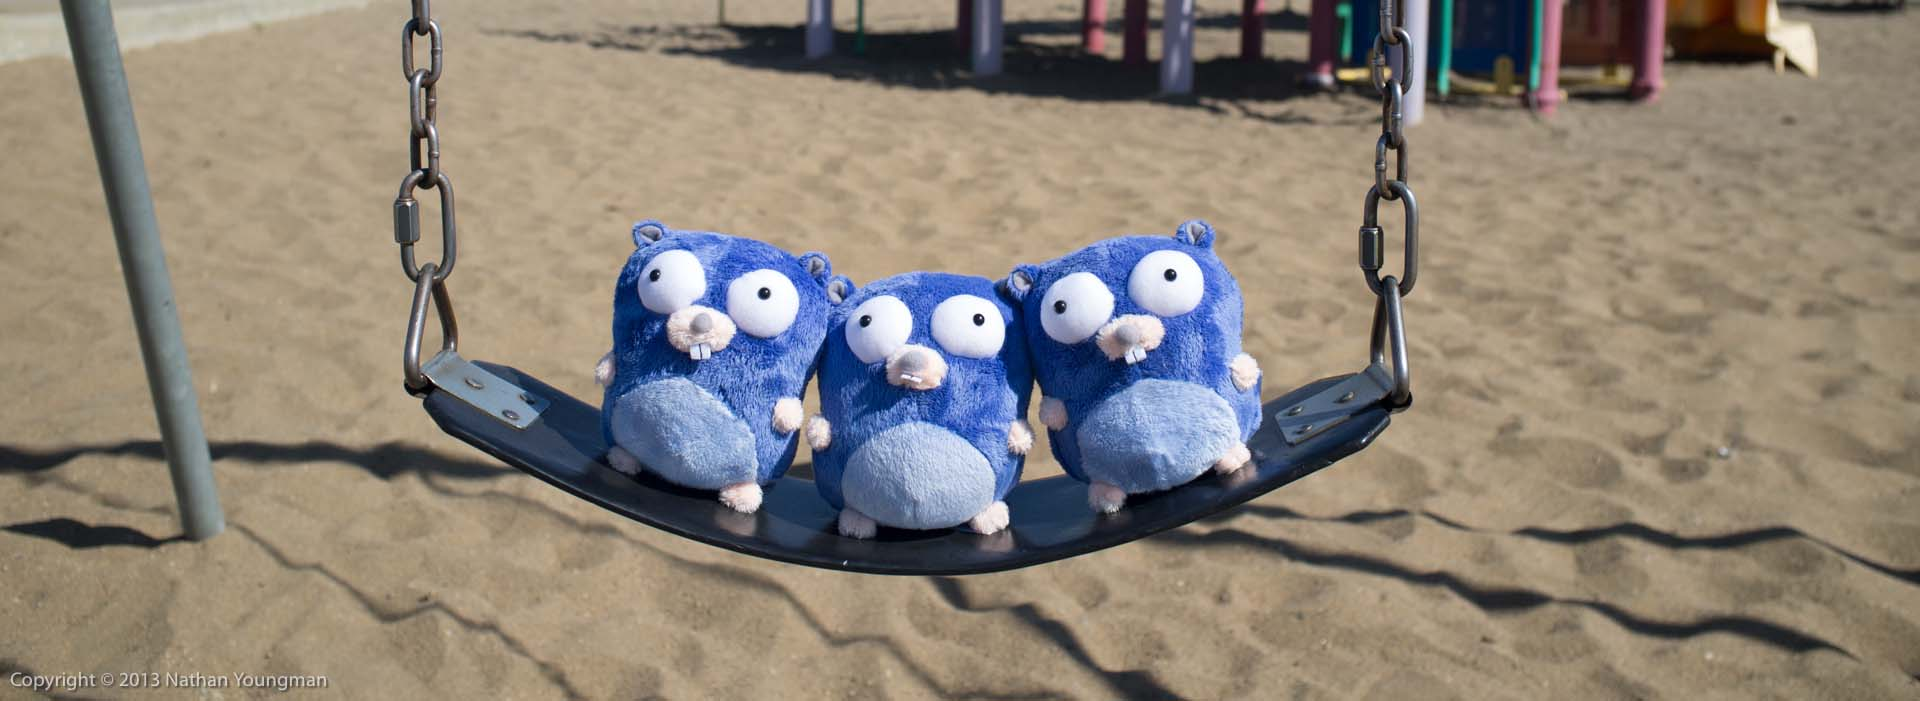 Gophers on a swing